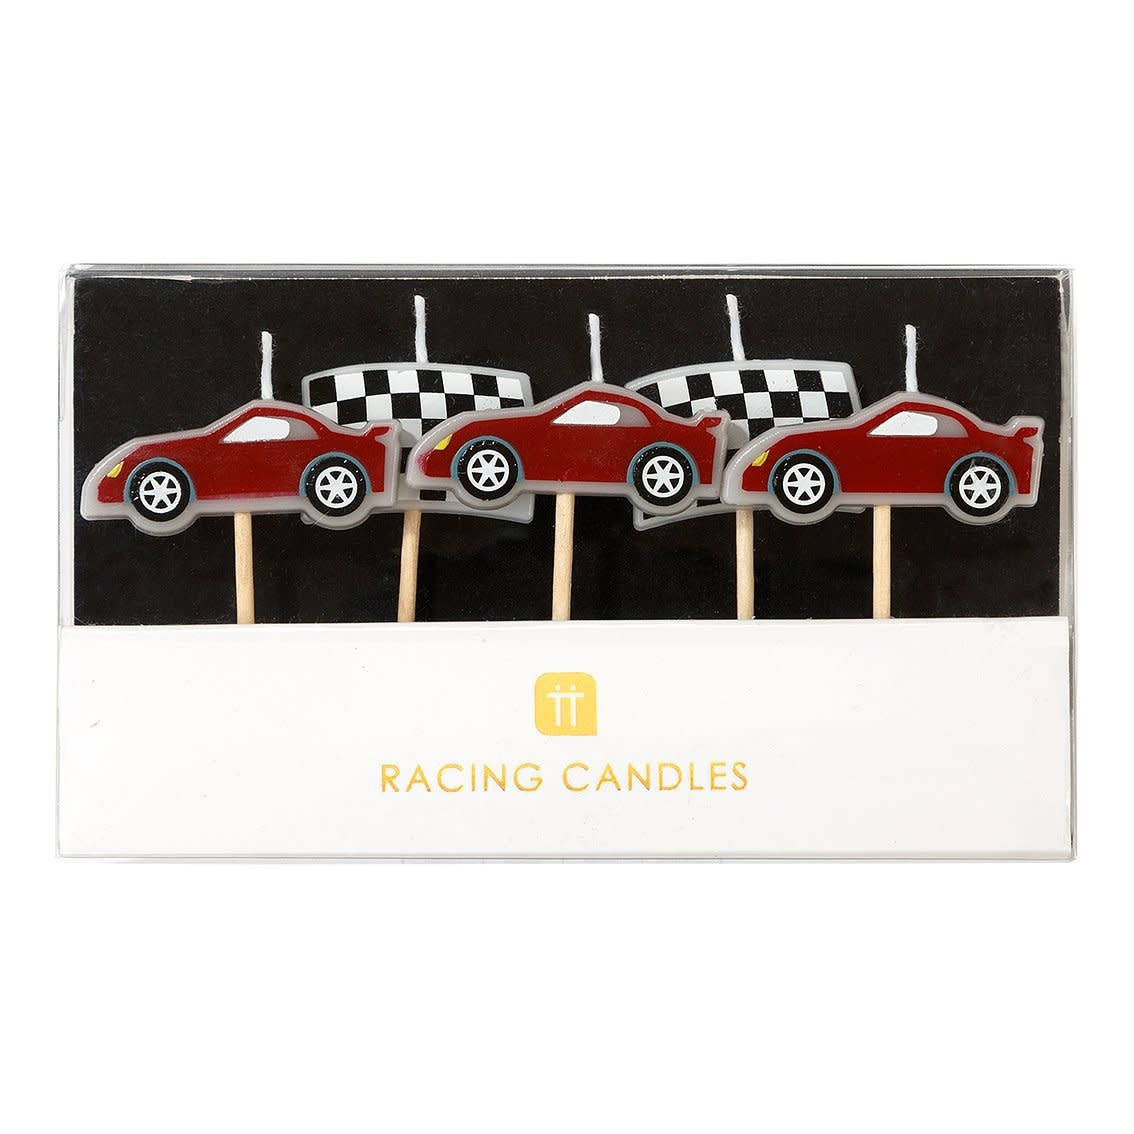 TT Party Racer Candles